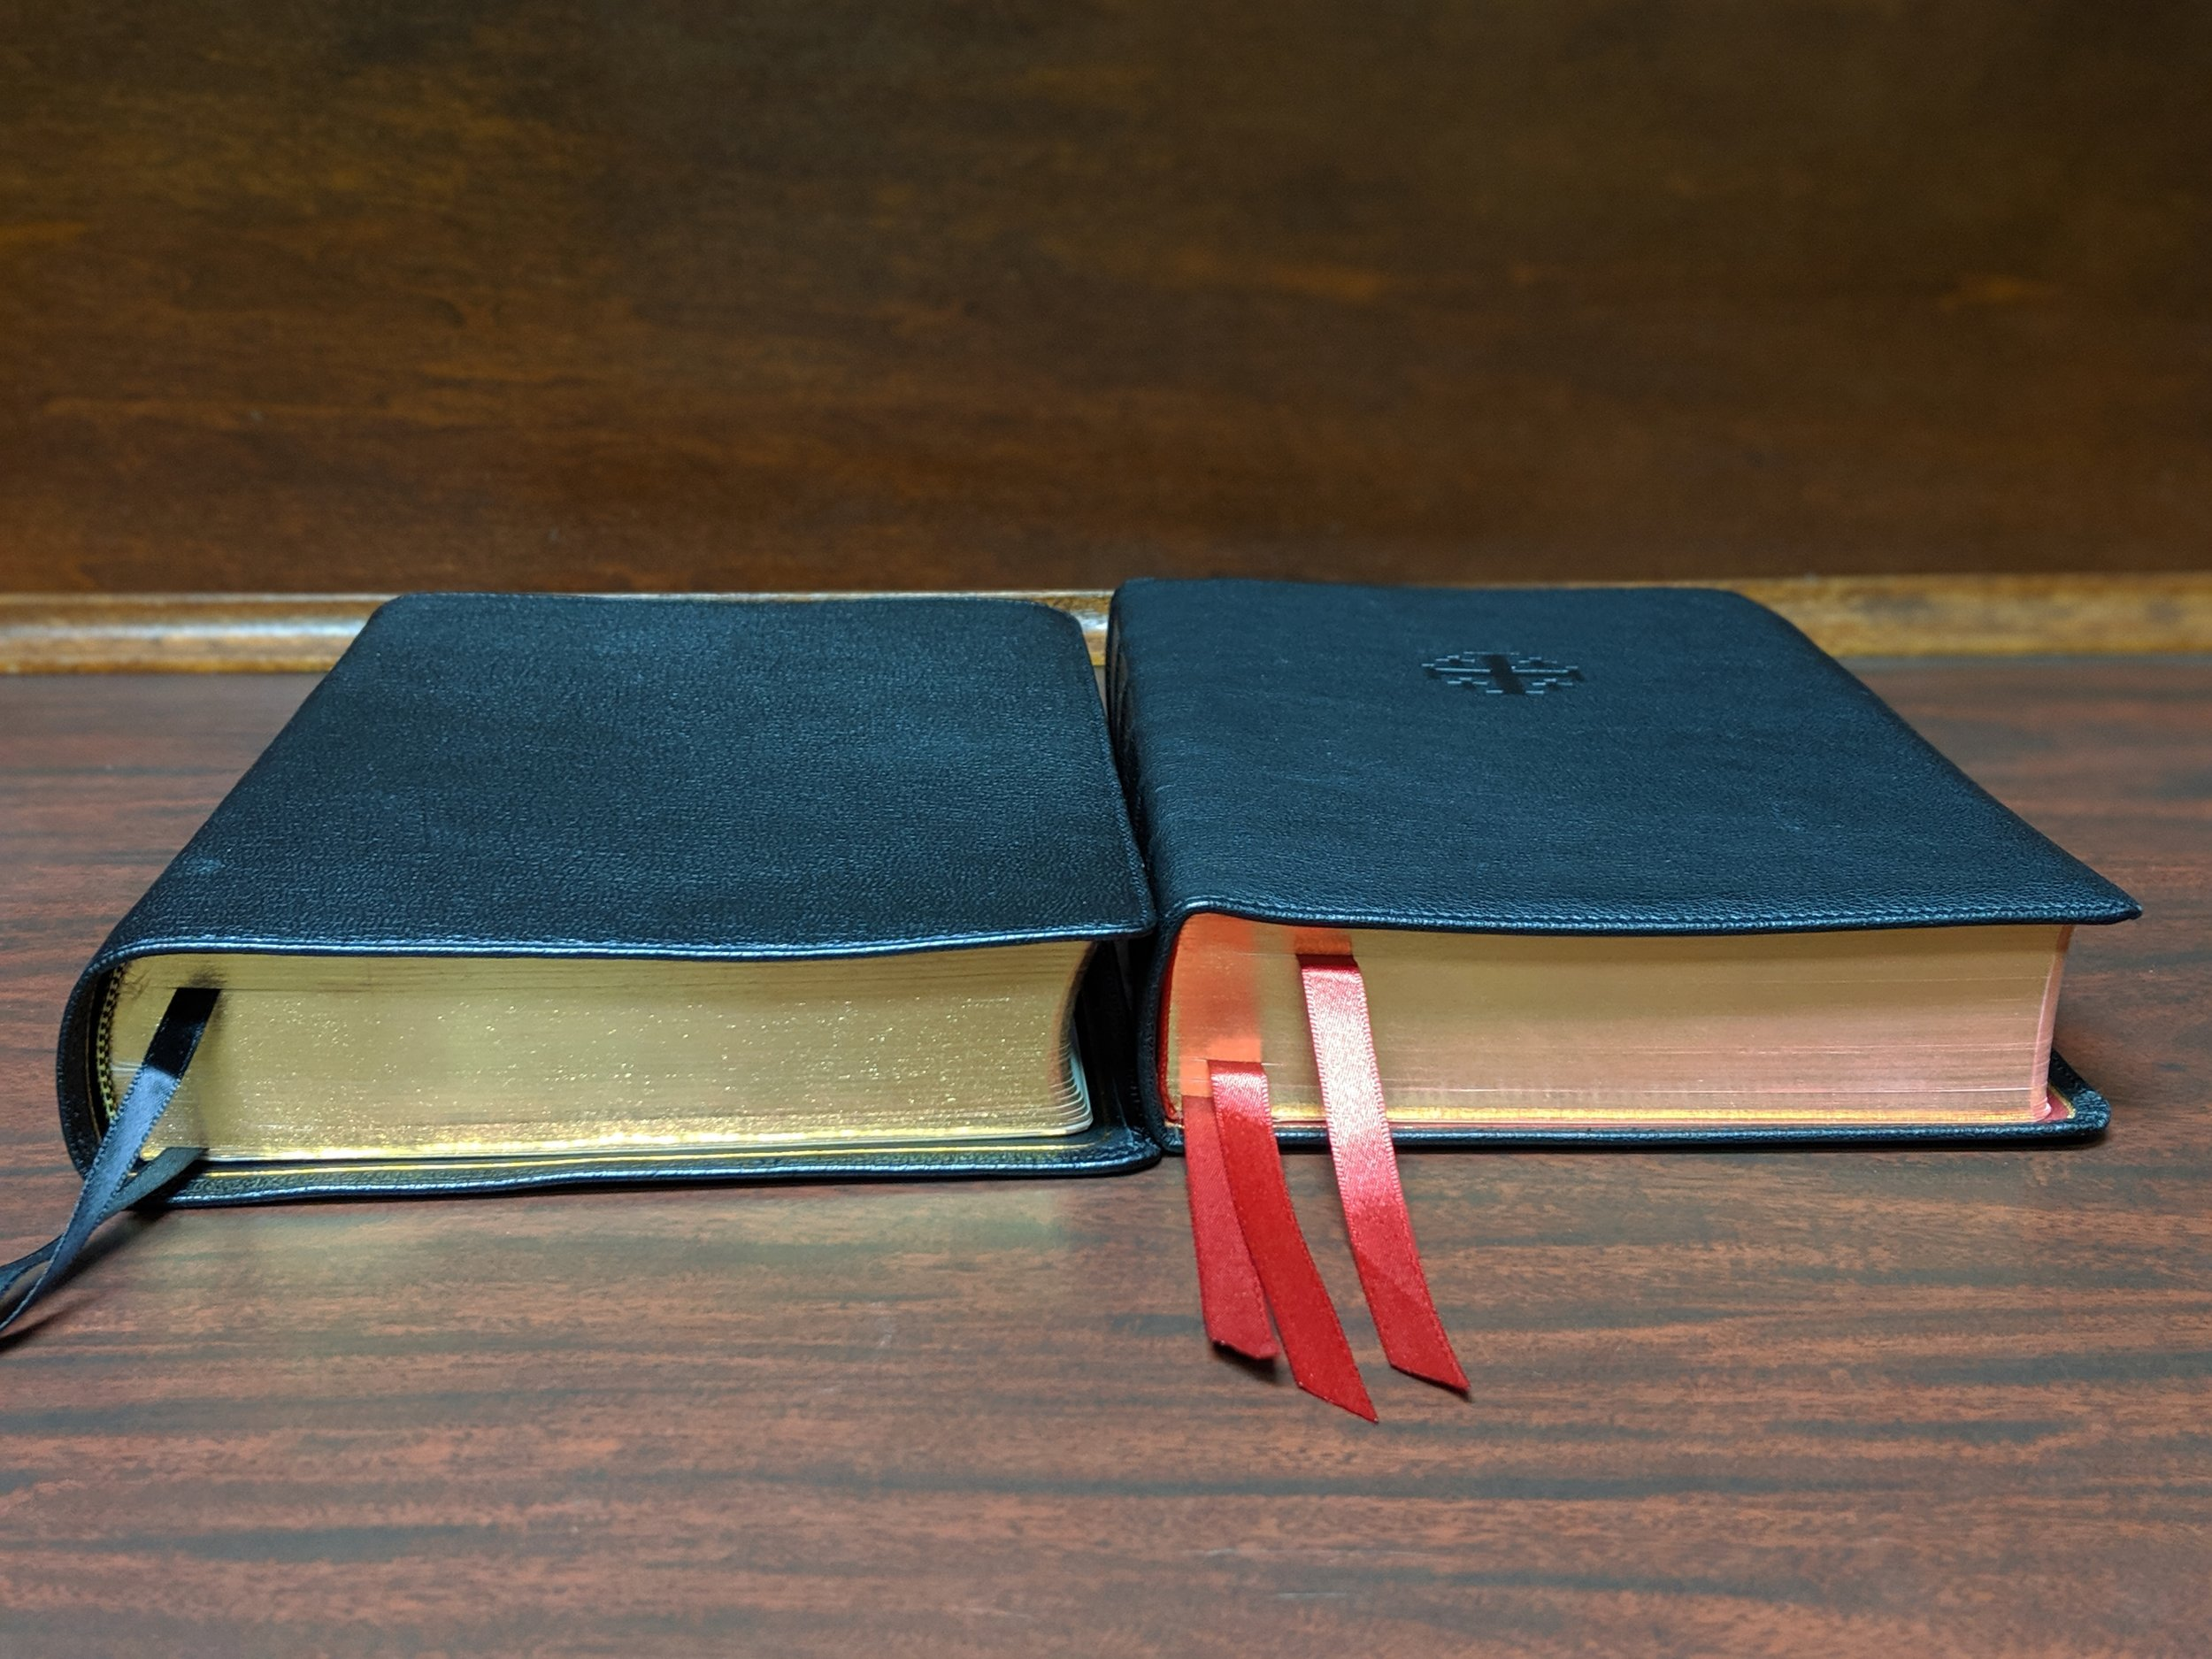 Side by side - ESV Preaching Bible (left); Credo Quentel (right)